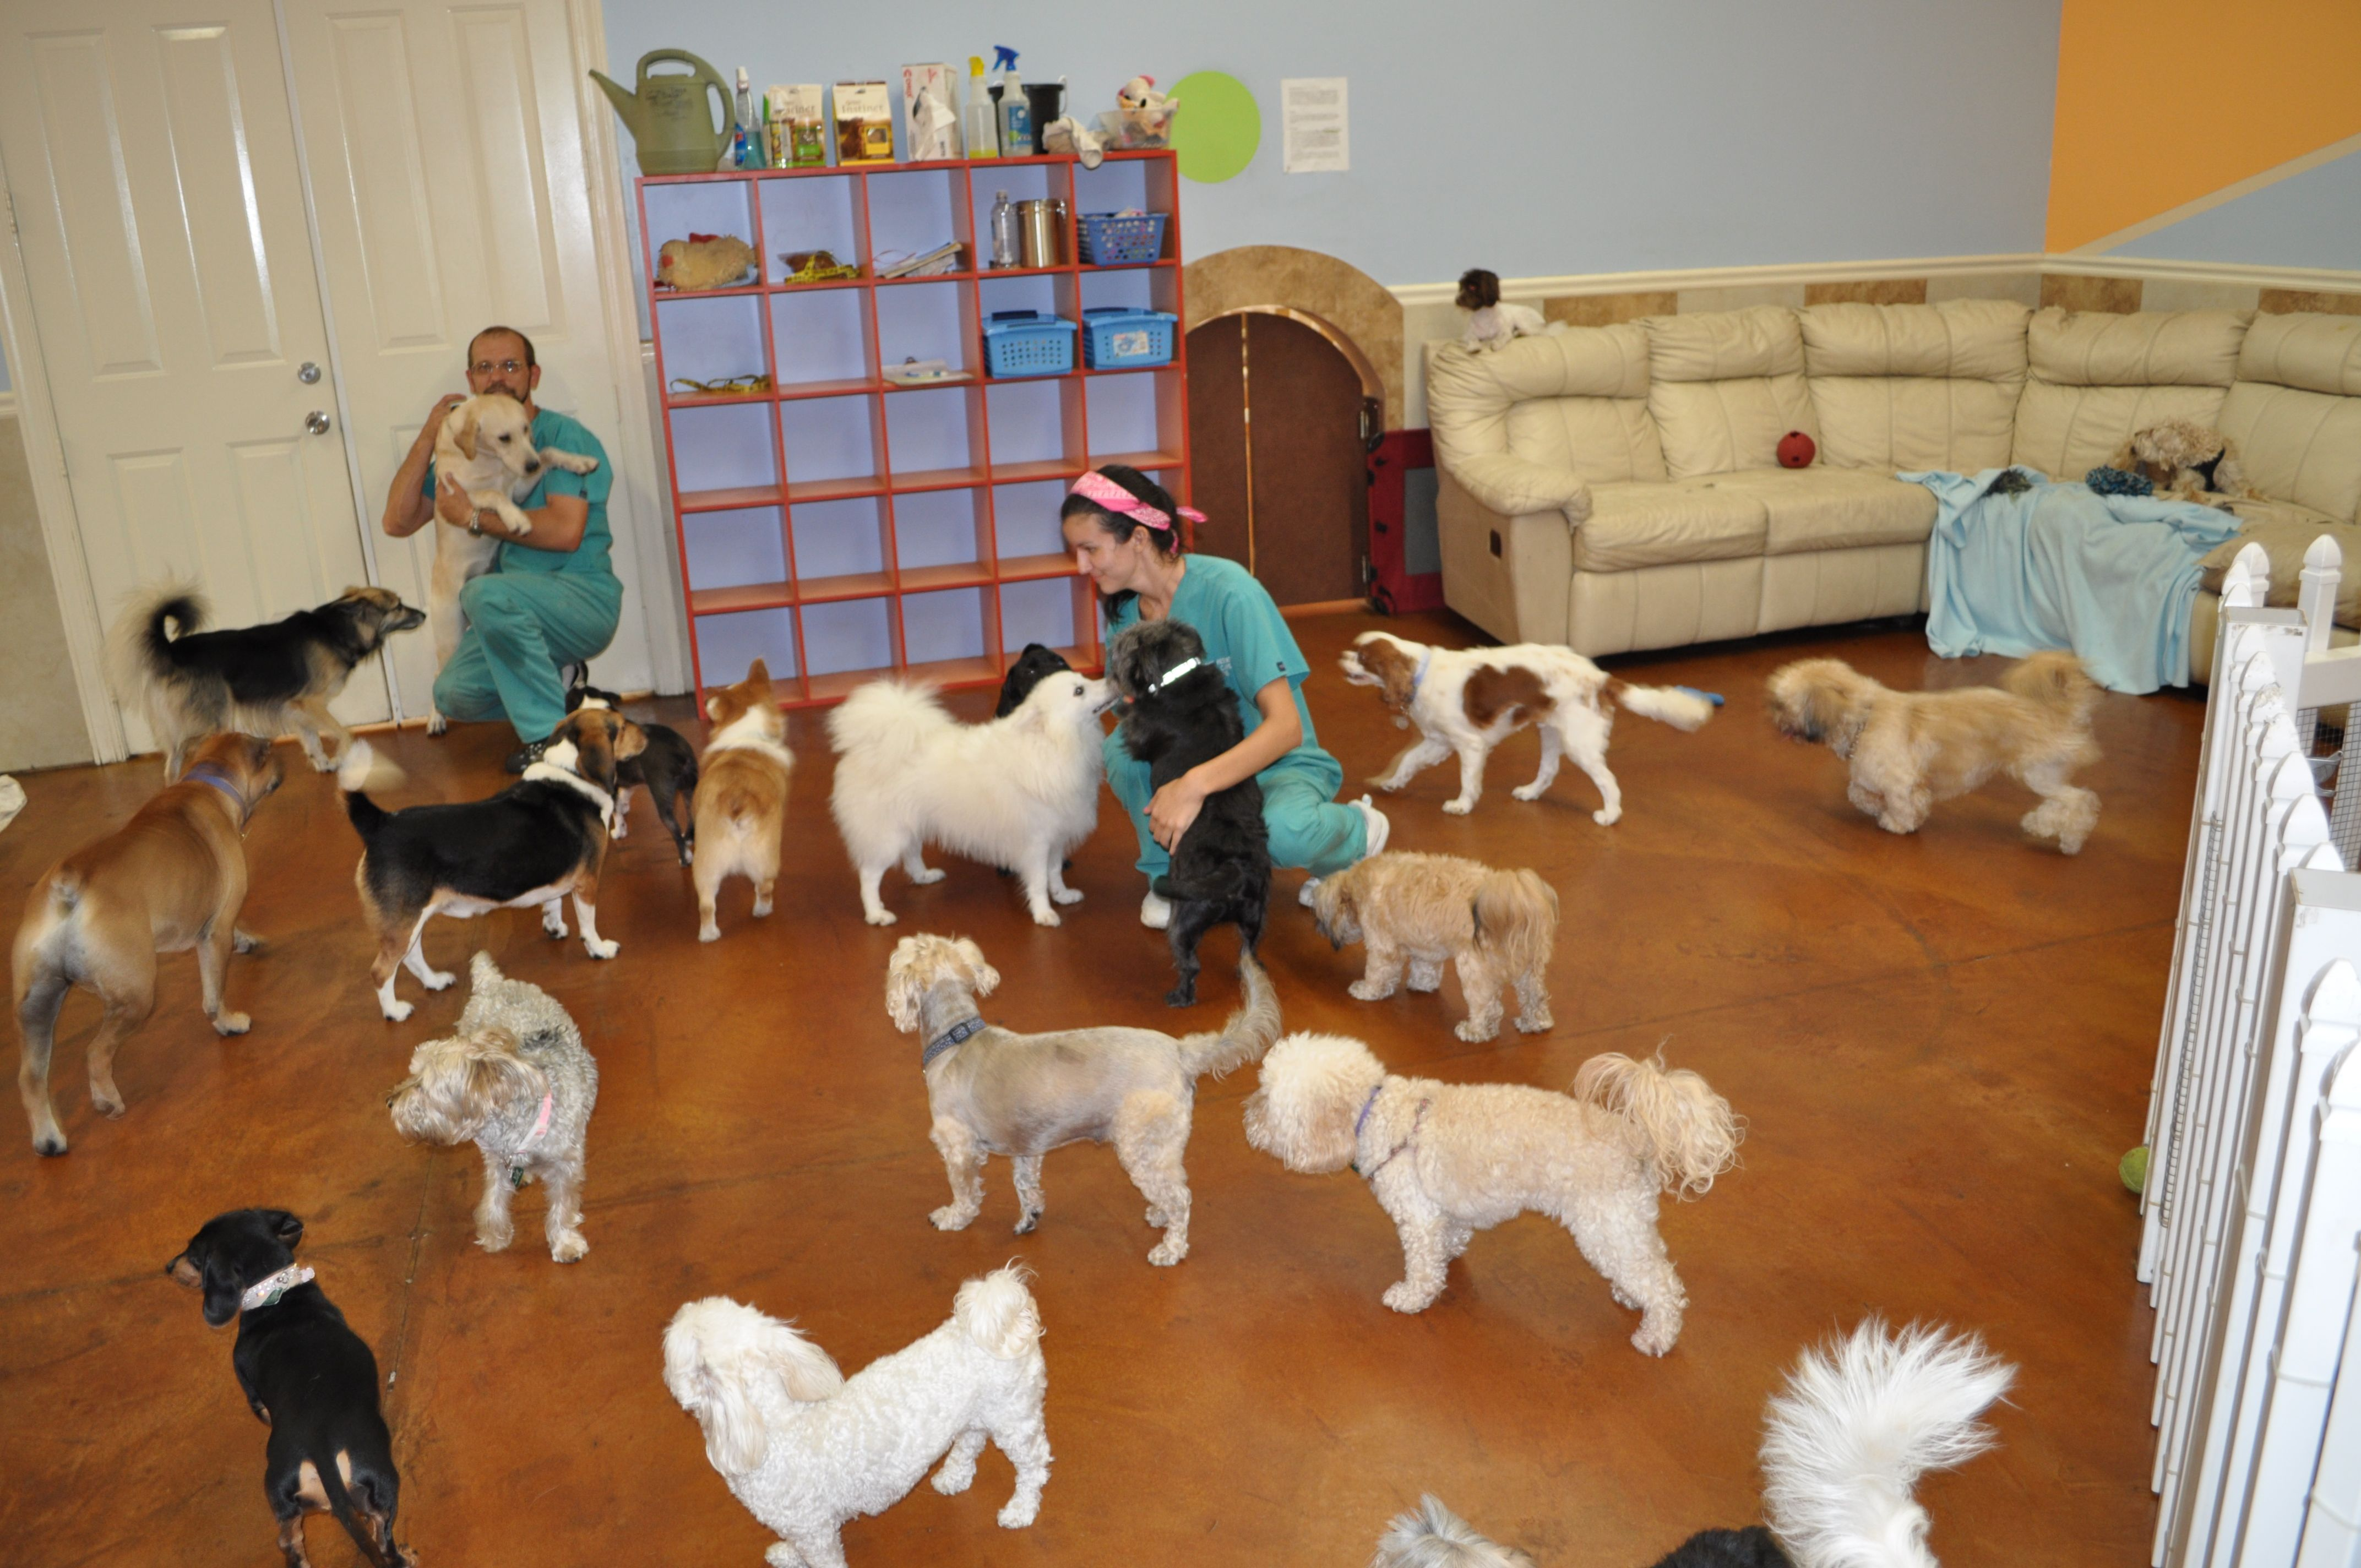 Barkers Pet Center Boarding Grooming Daycare In Ft Lauderdale